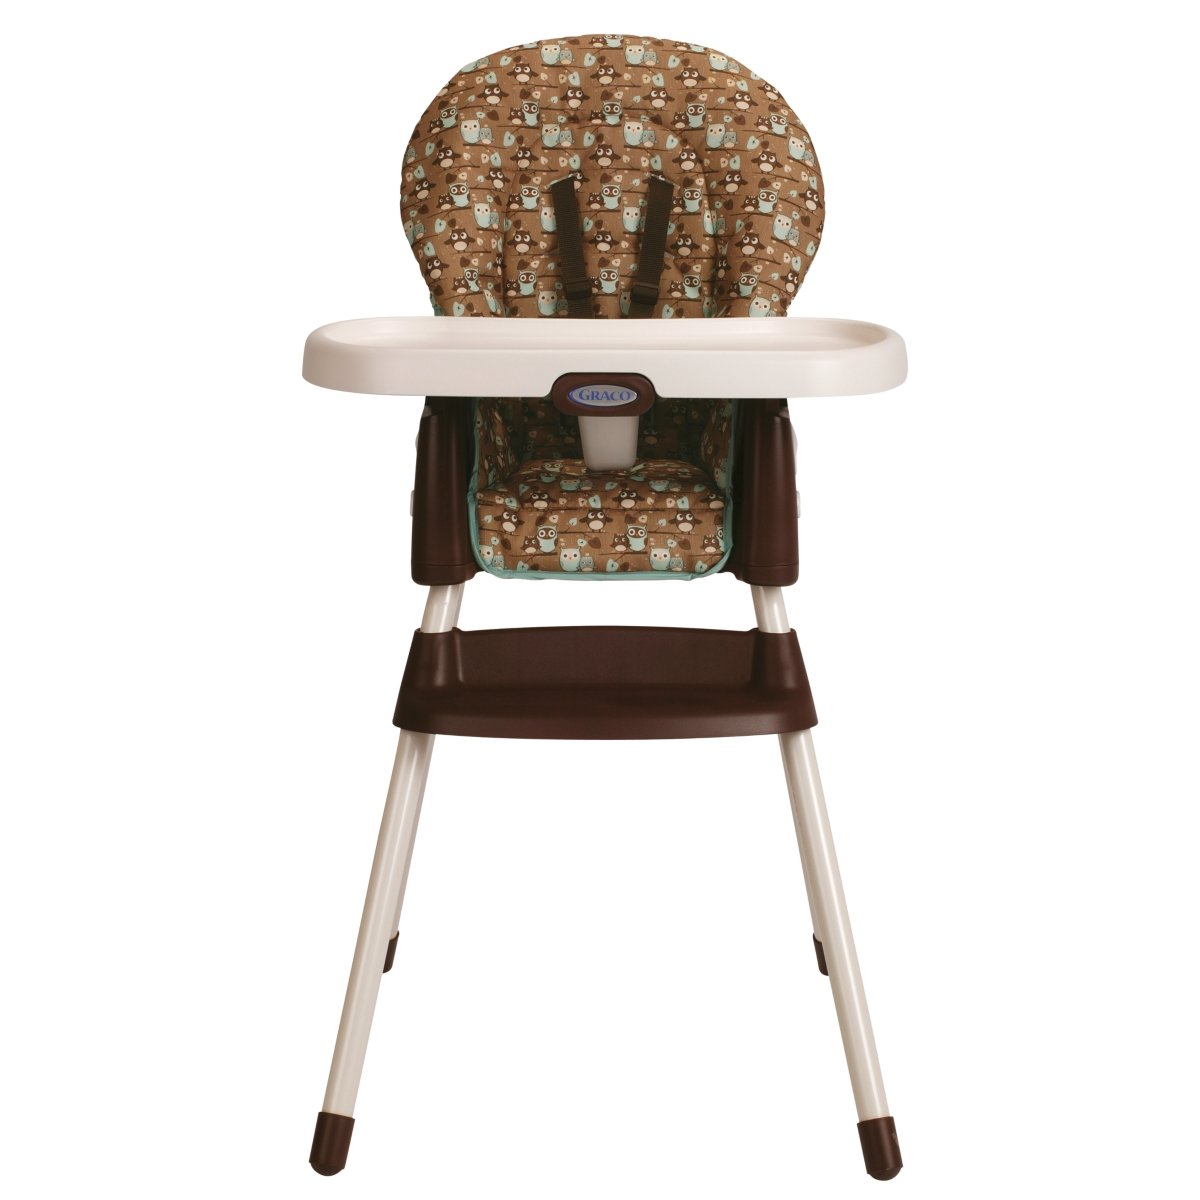 graco convertible high chair tommy bahama cooler simpleswitch highchair and booster little hoot